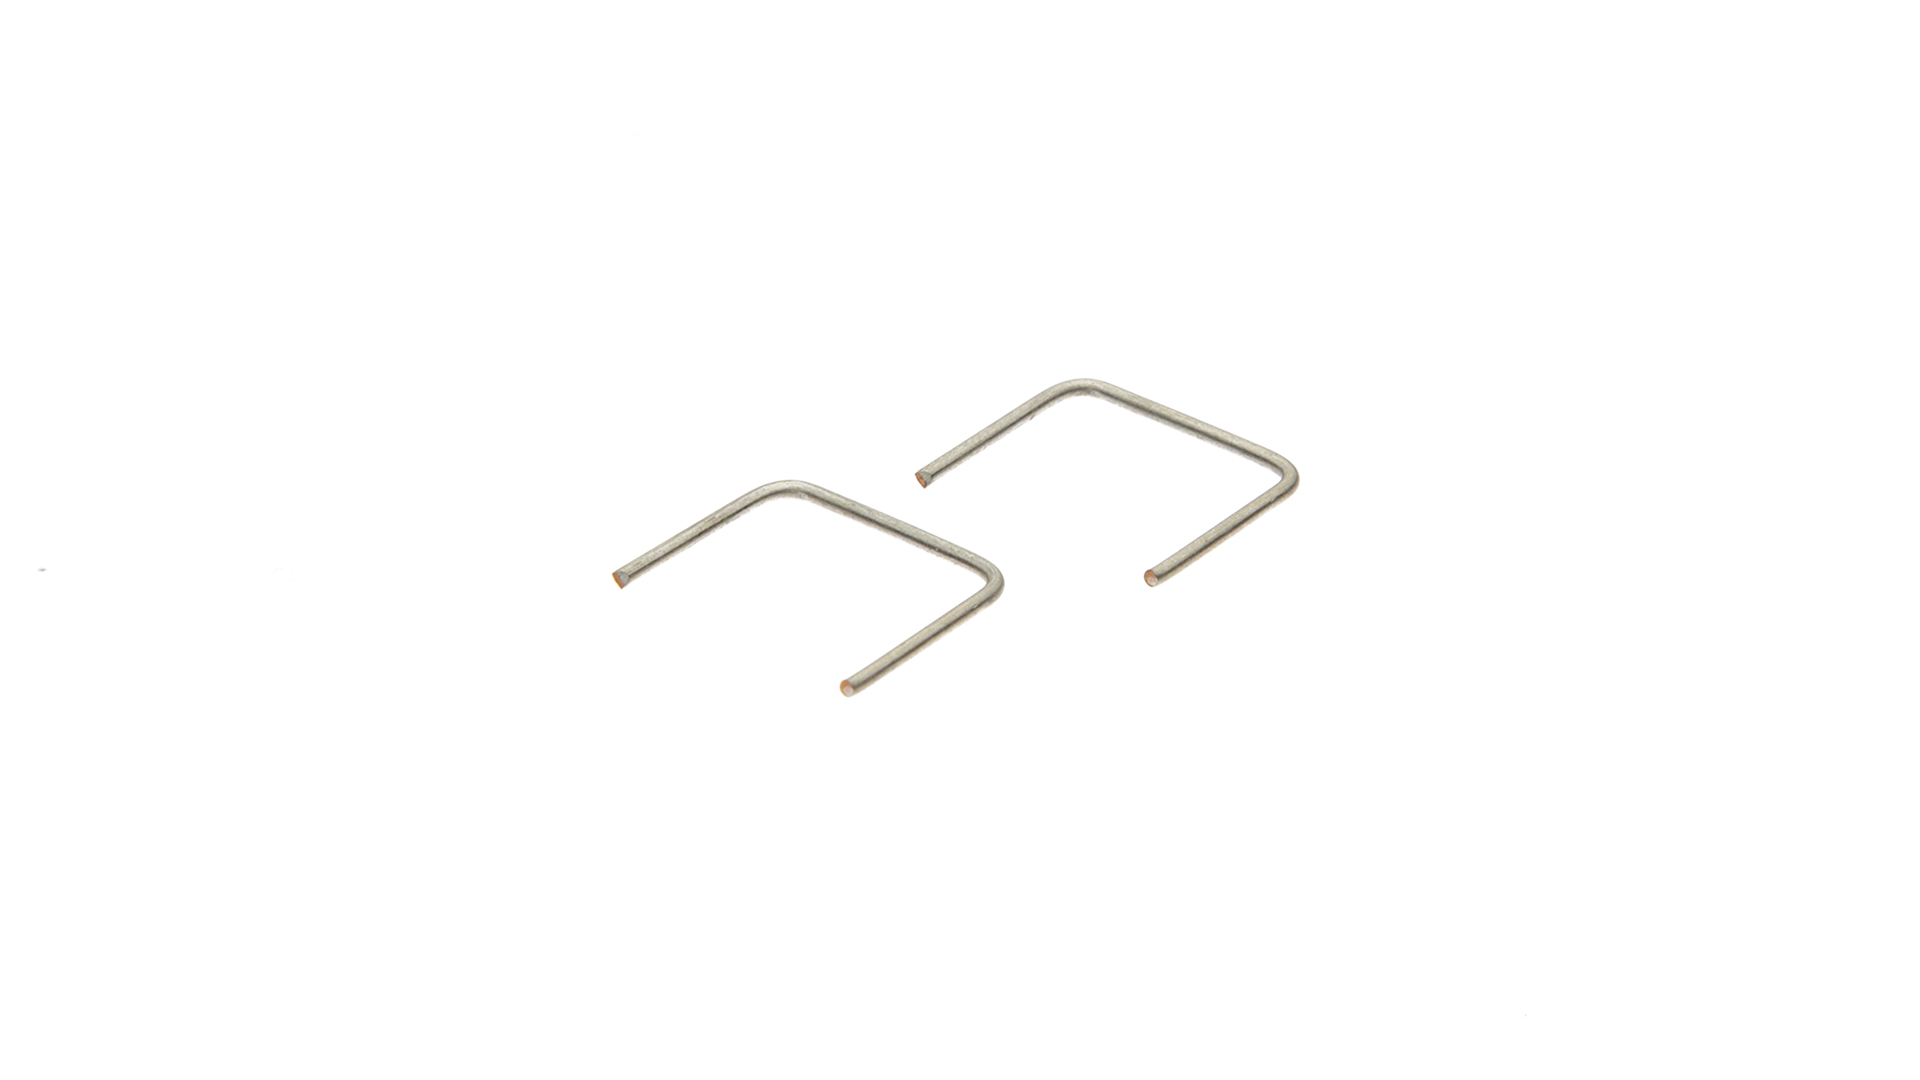 PP15-45 Accessories PCB Mounting Staples